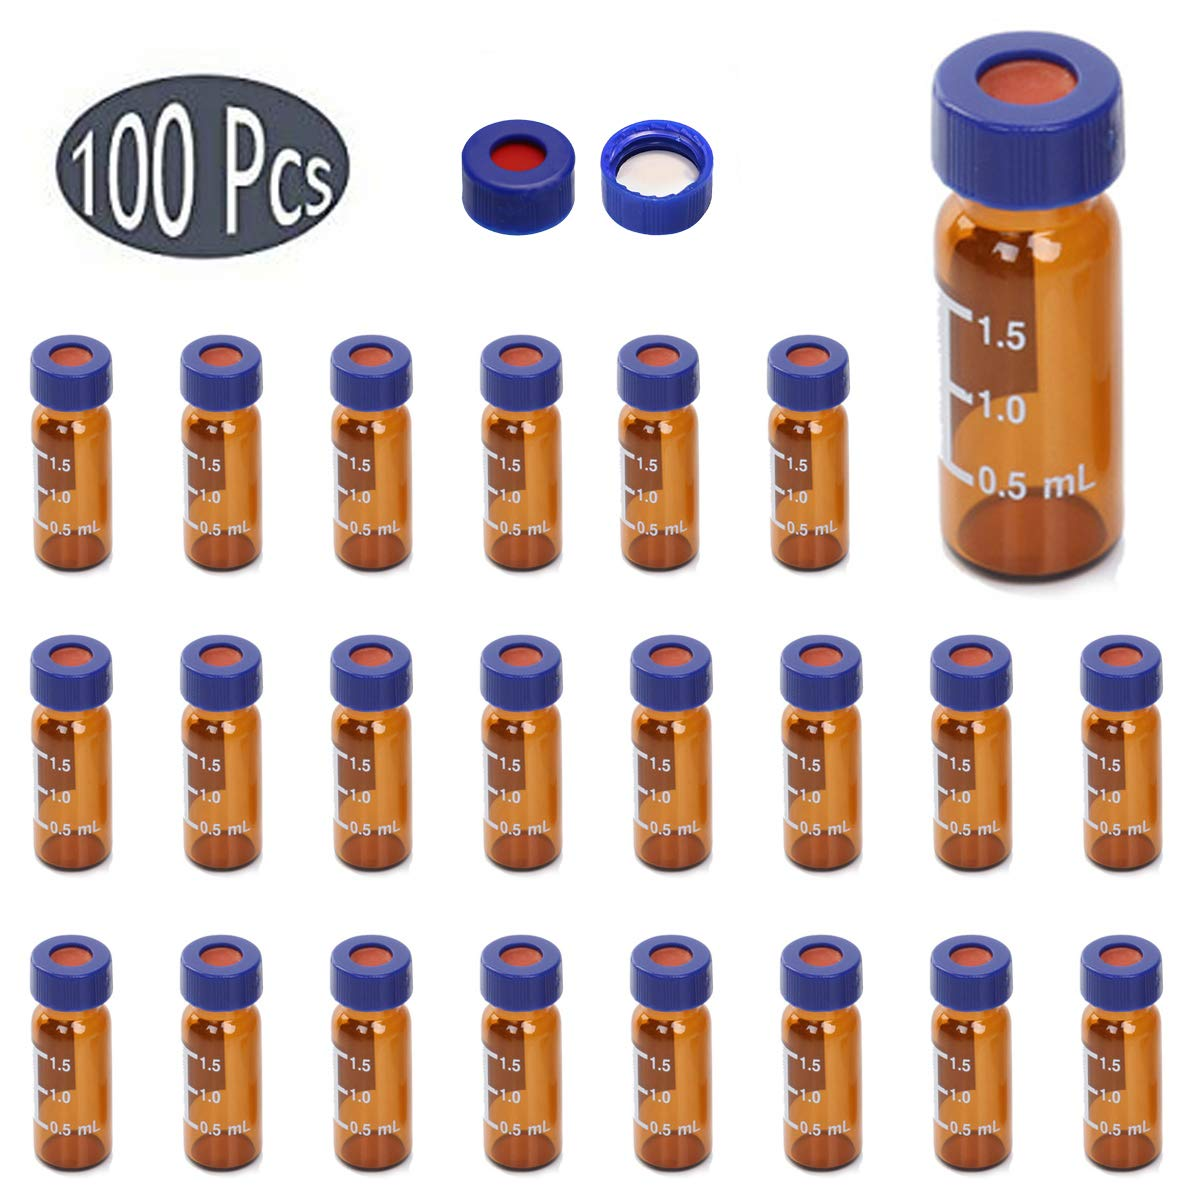 Moonter Autosampler Vials, 2ml Amber Glass Sample Vials with Write-on Spot and Graduations 9mm Blue Screw Cap with Hole + White PTFE/Red Silicone Septa for 9-425 Screw Top Vial, Set of 100 (A)